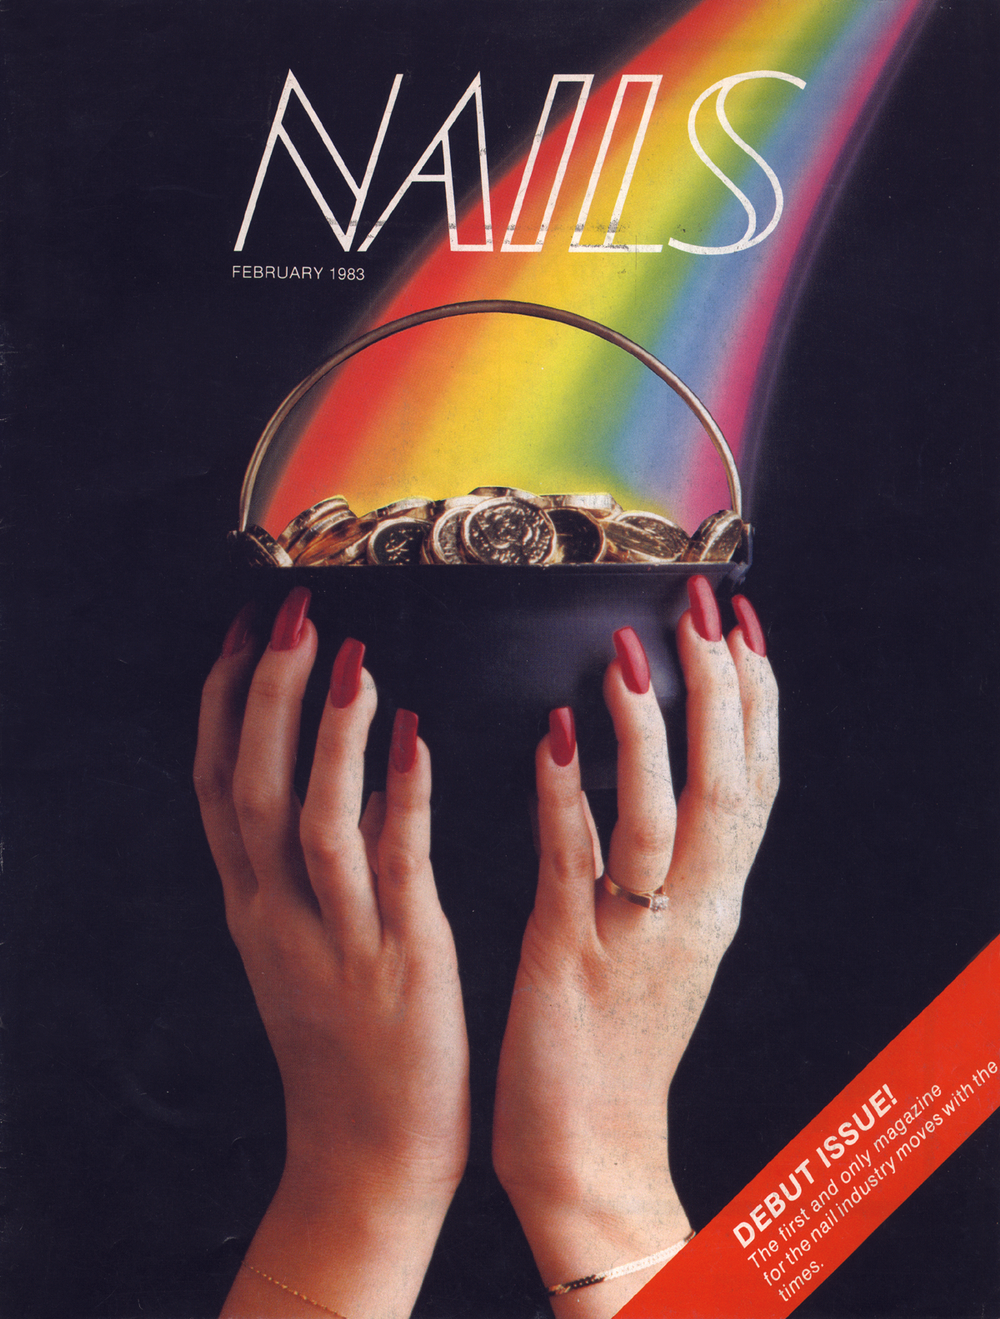 <p><strong>1983:</strong> The first issue of NAILS is distributed at the Long Beach Hairdressers Guild Show (as it was called then) to about 5,000 nail techs. Business grows quickly. At the time there were no other trade magazines, although there was a newspaper called Mainly Manicuring, which folded a few years later.</p>